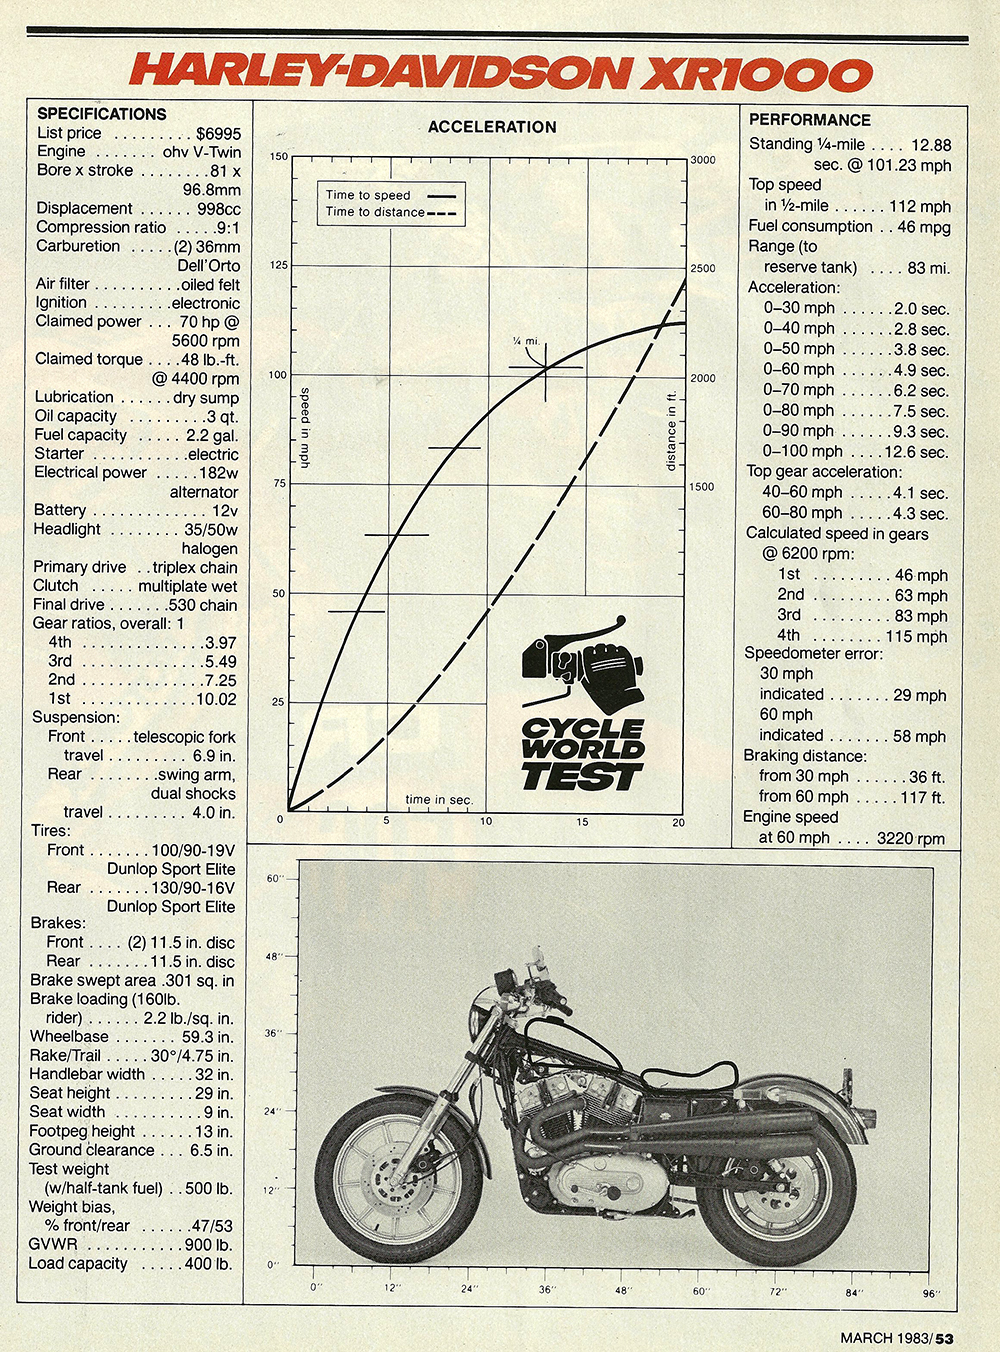 1983 Harley-Davidson XR1000 road test 08.jpg